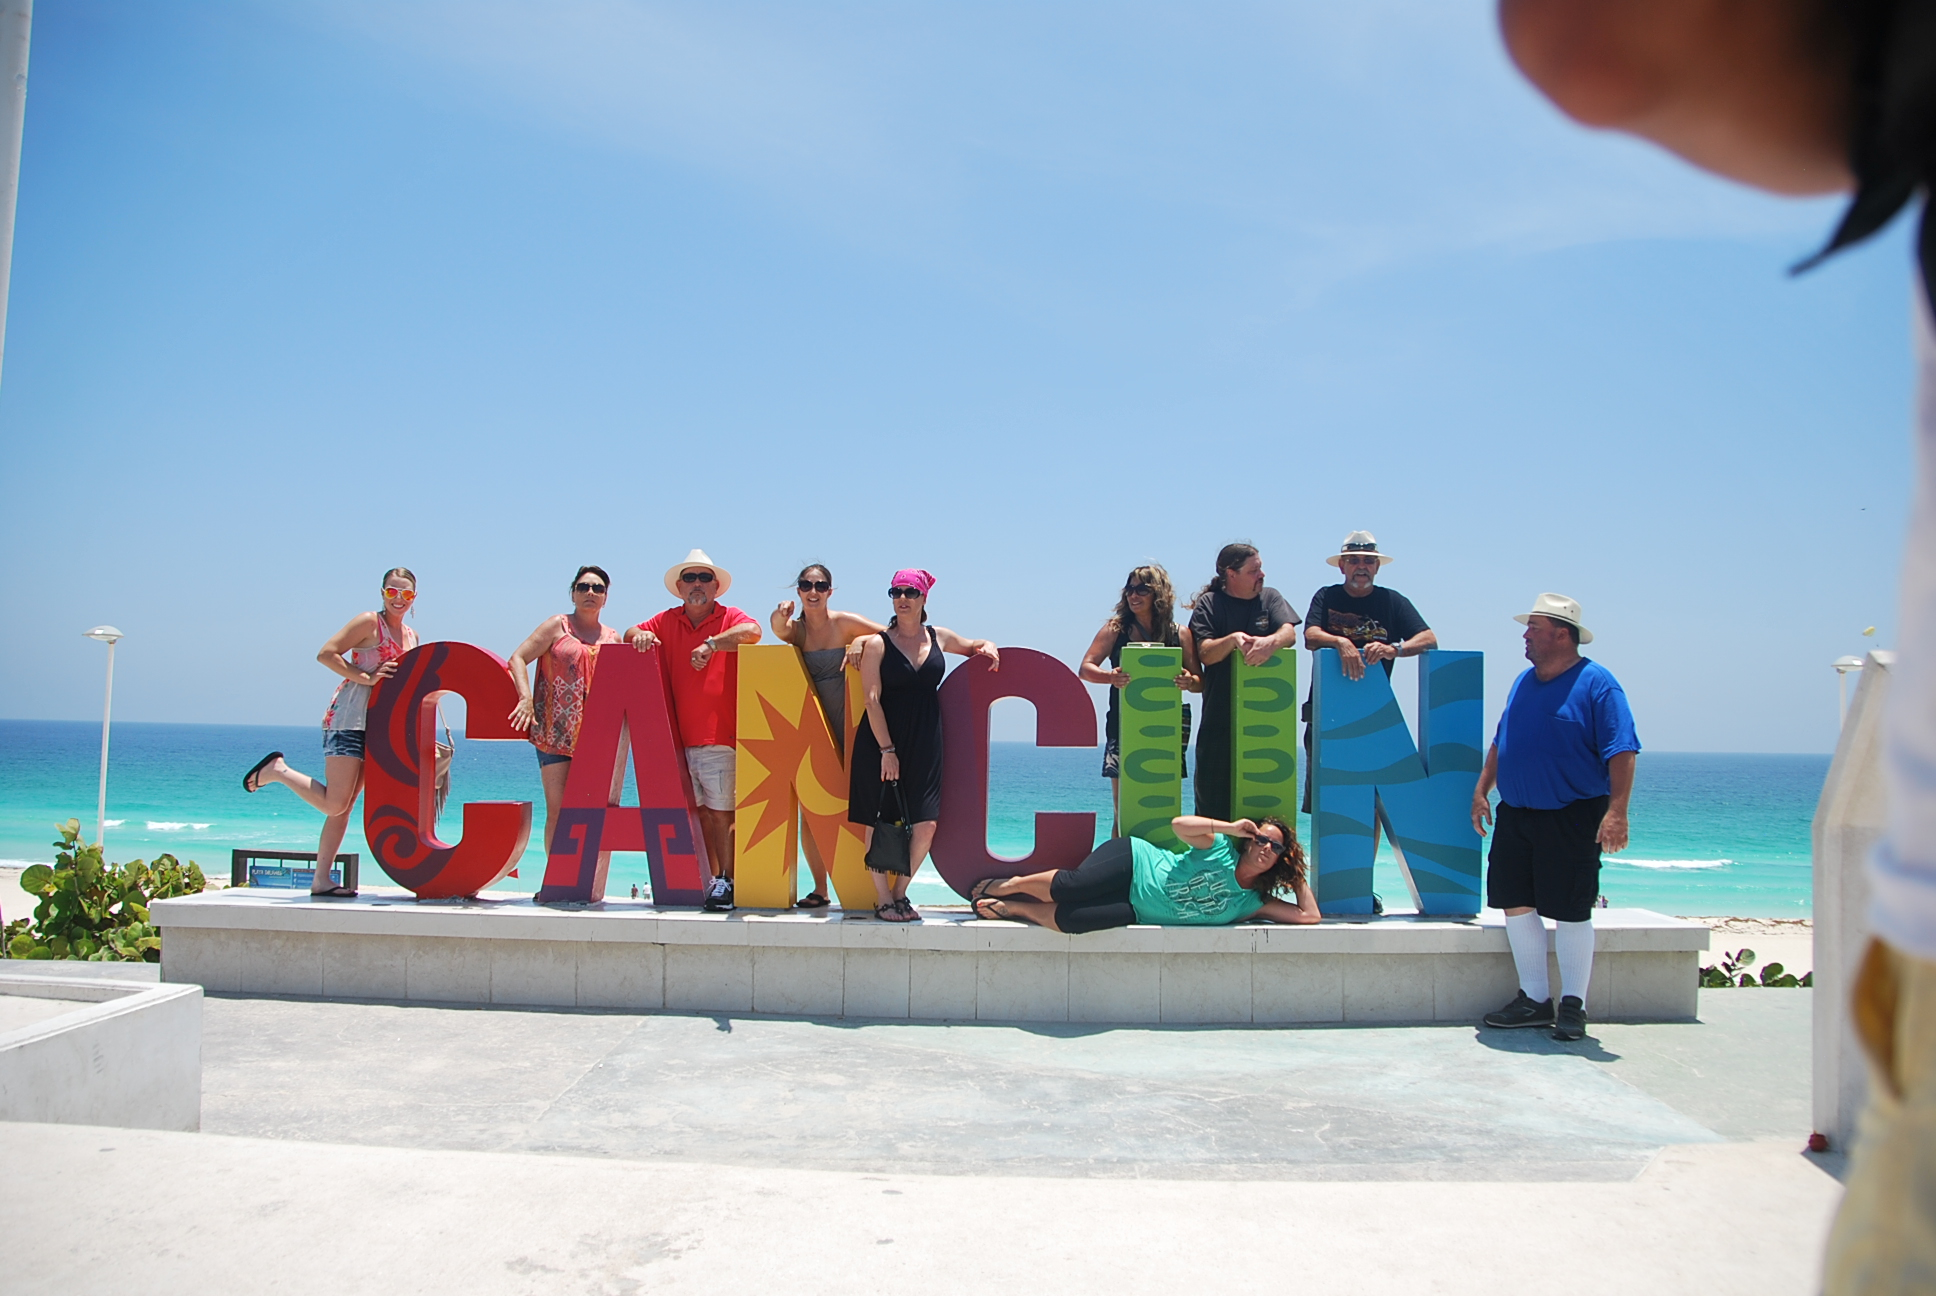 people standing by the Cancun sign